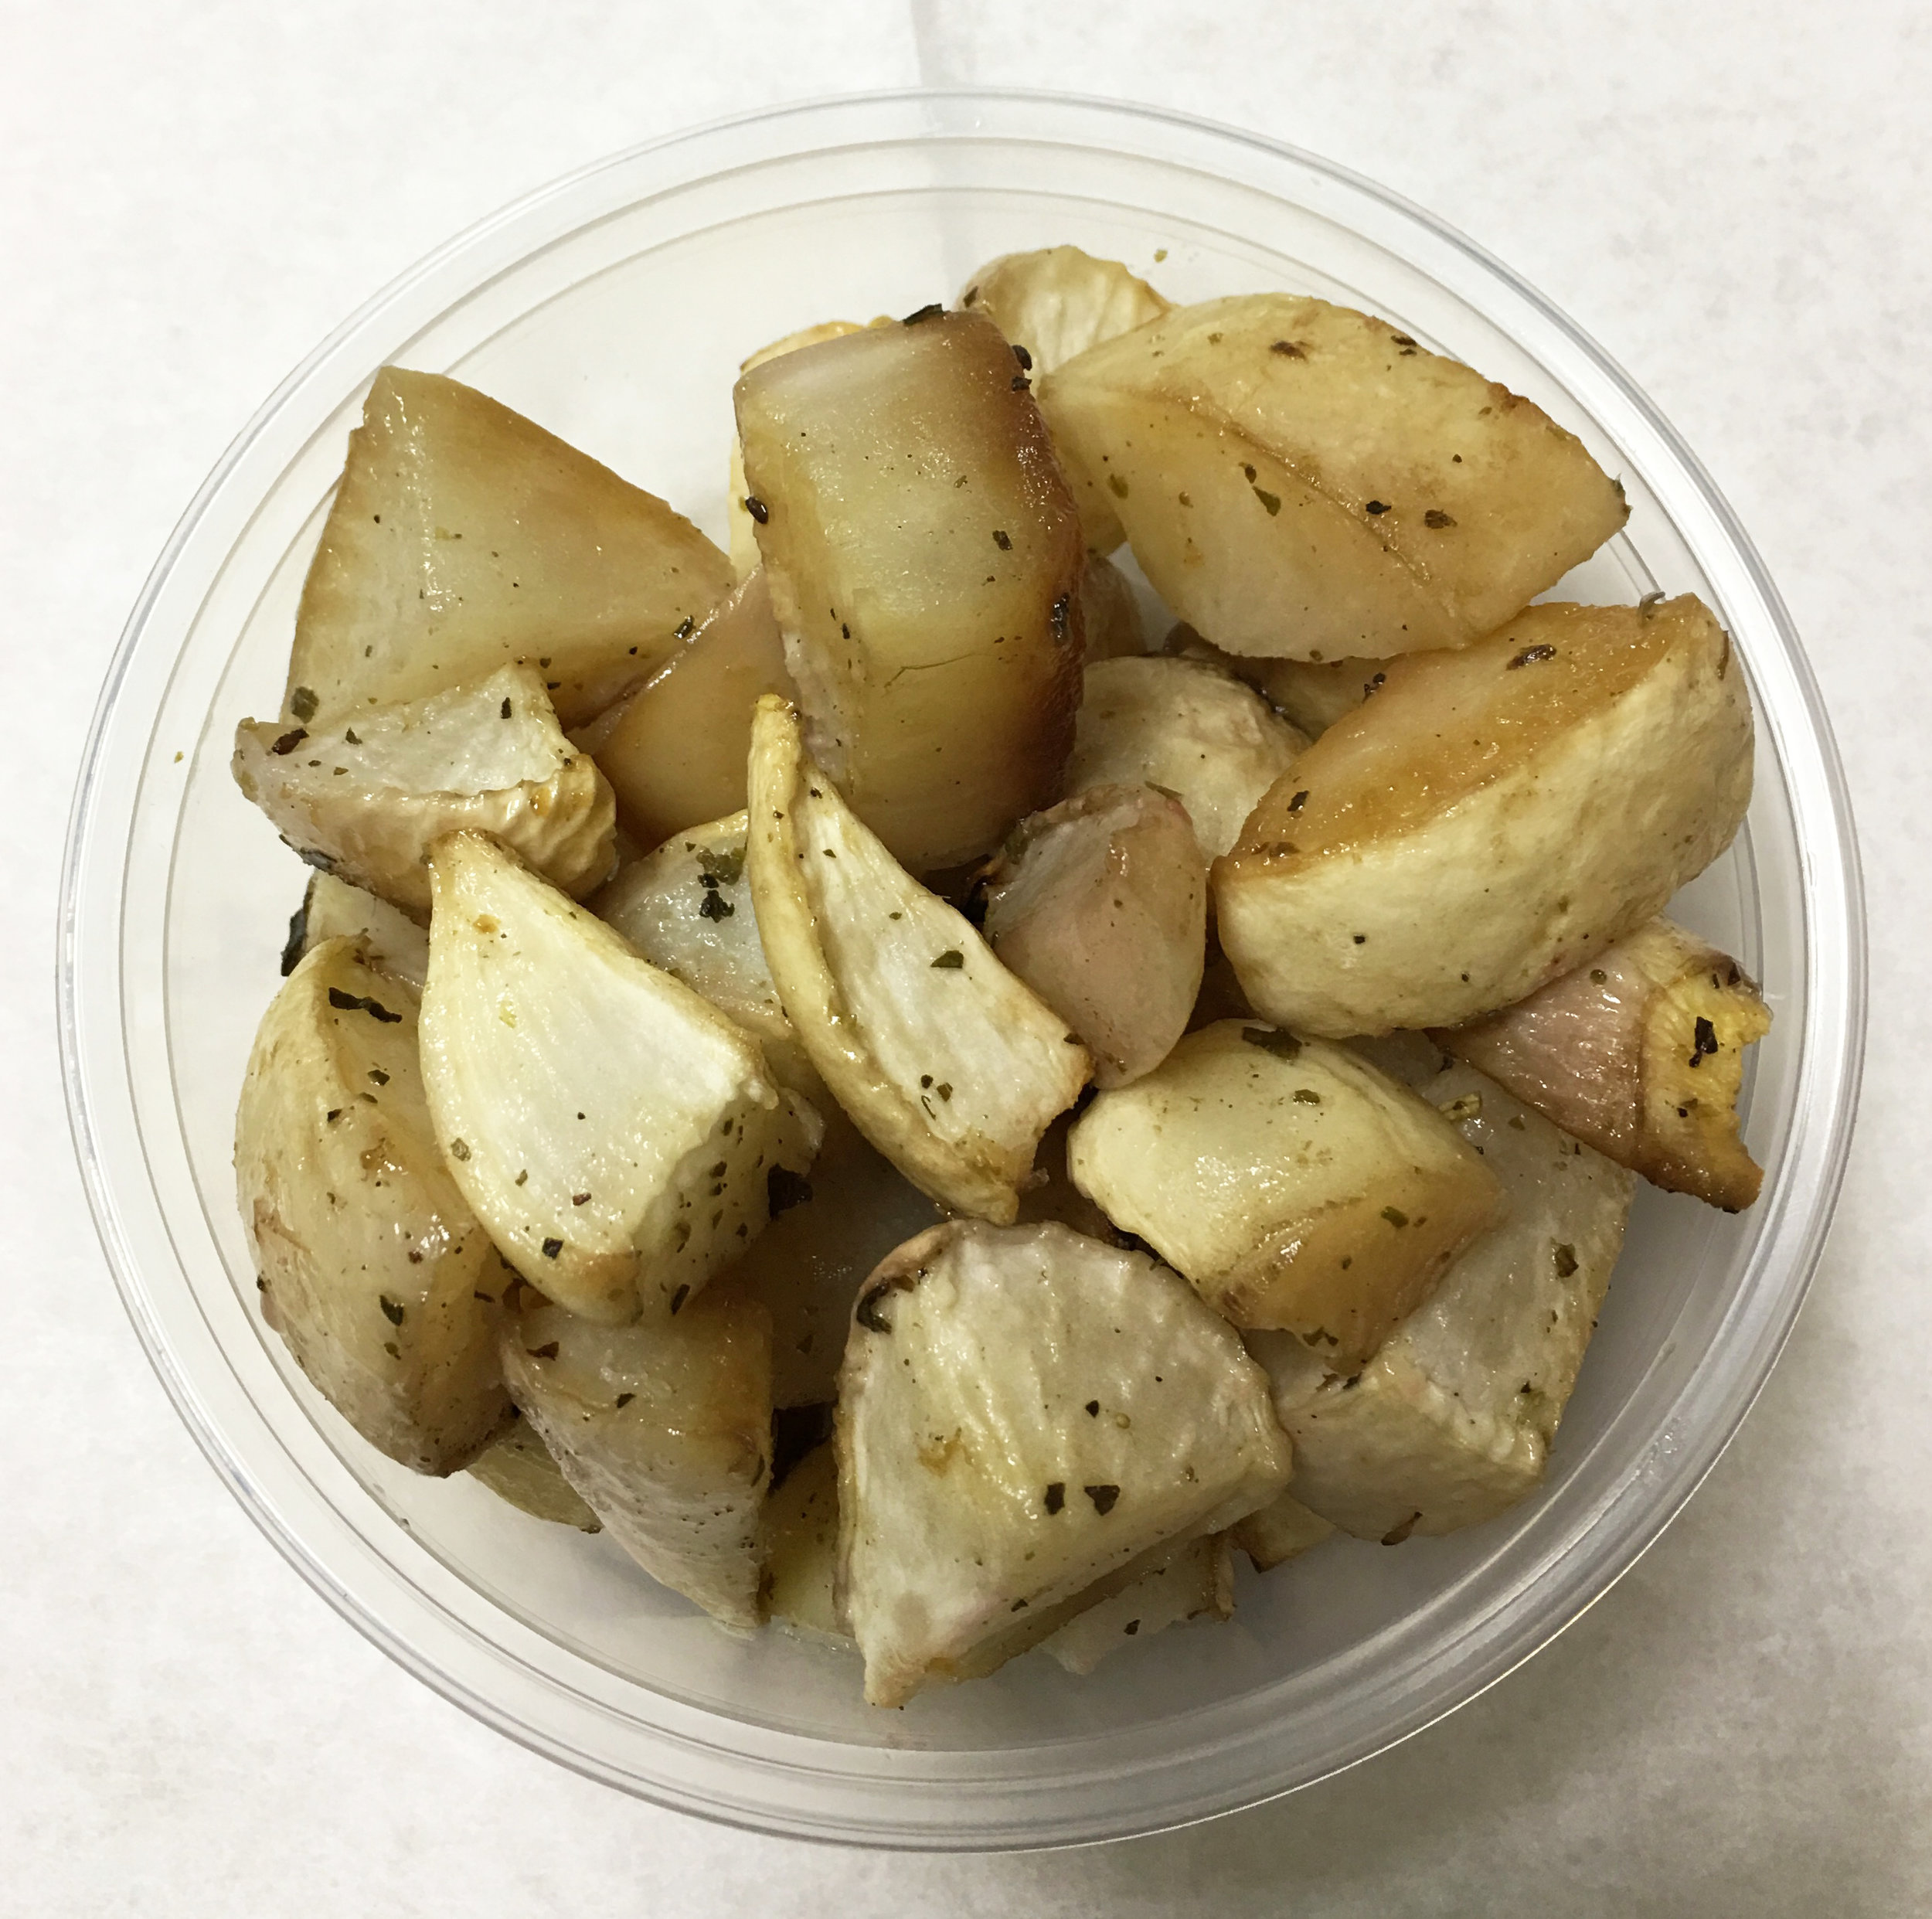 Baked turnips with Italian herbs.